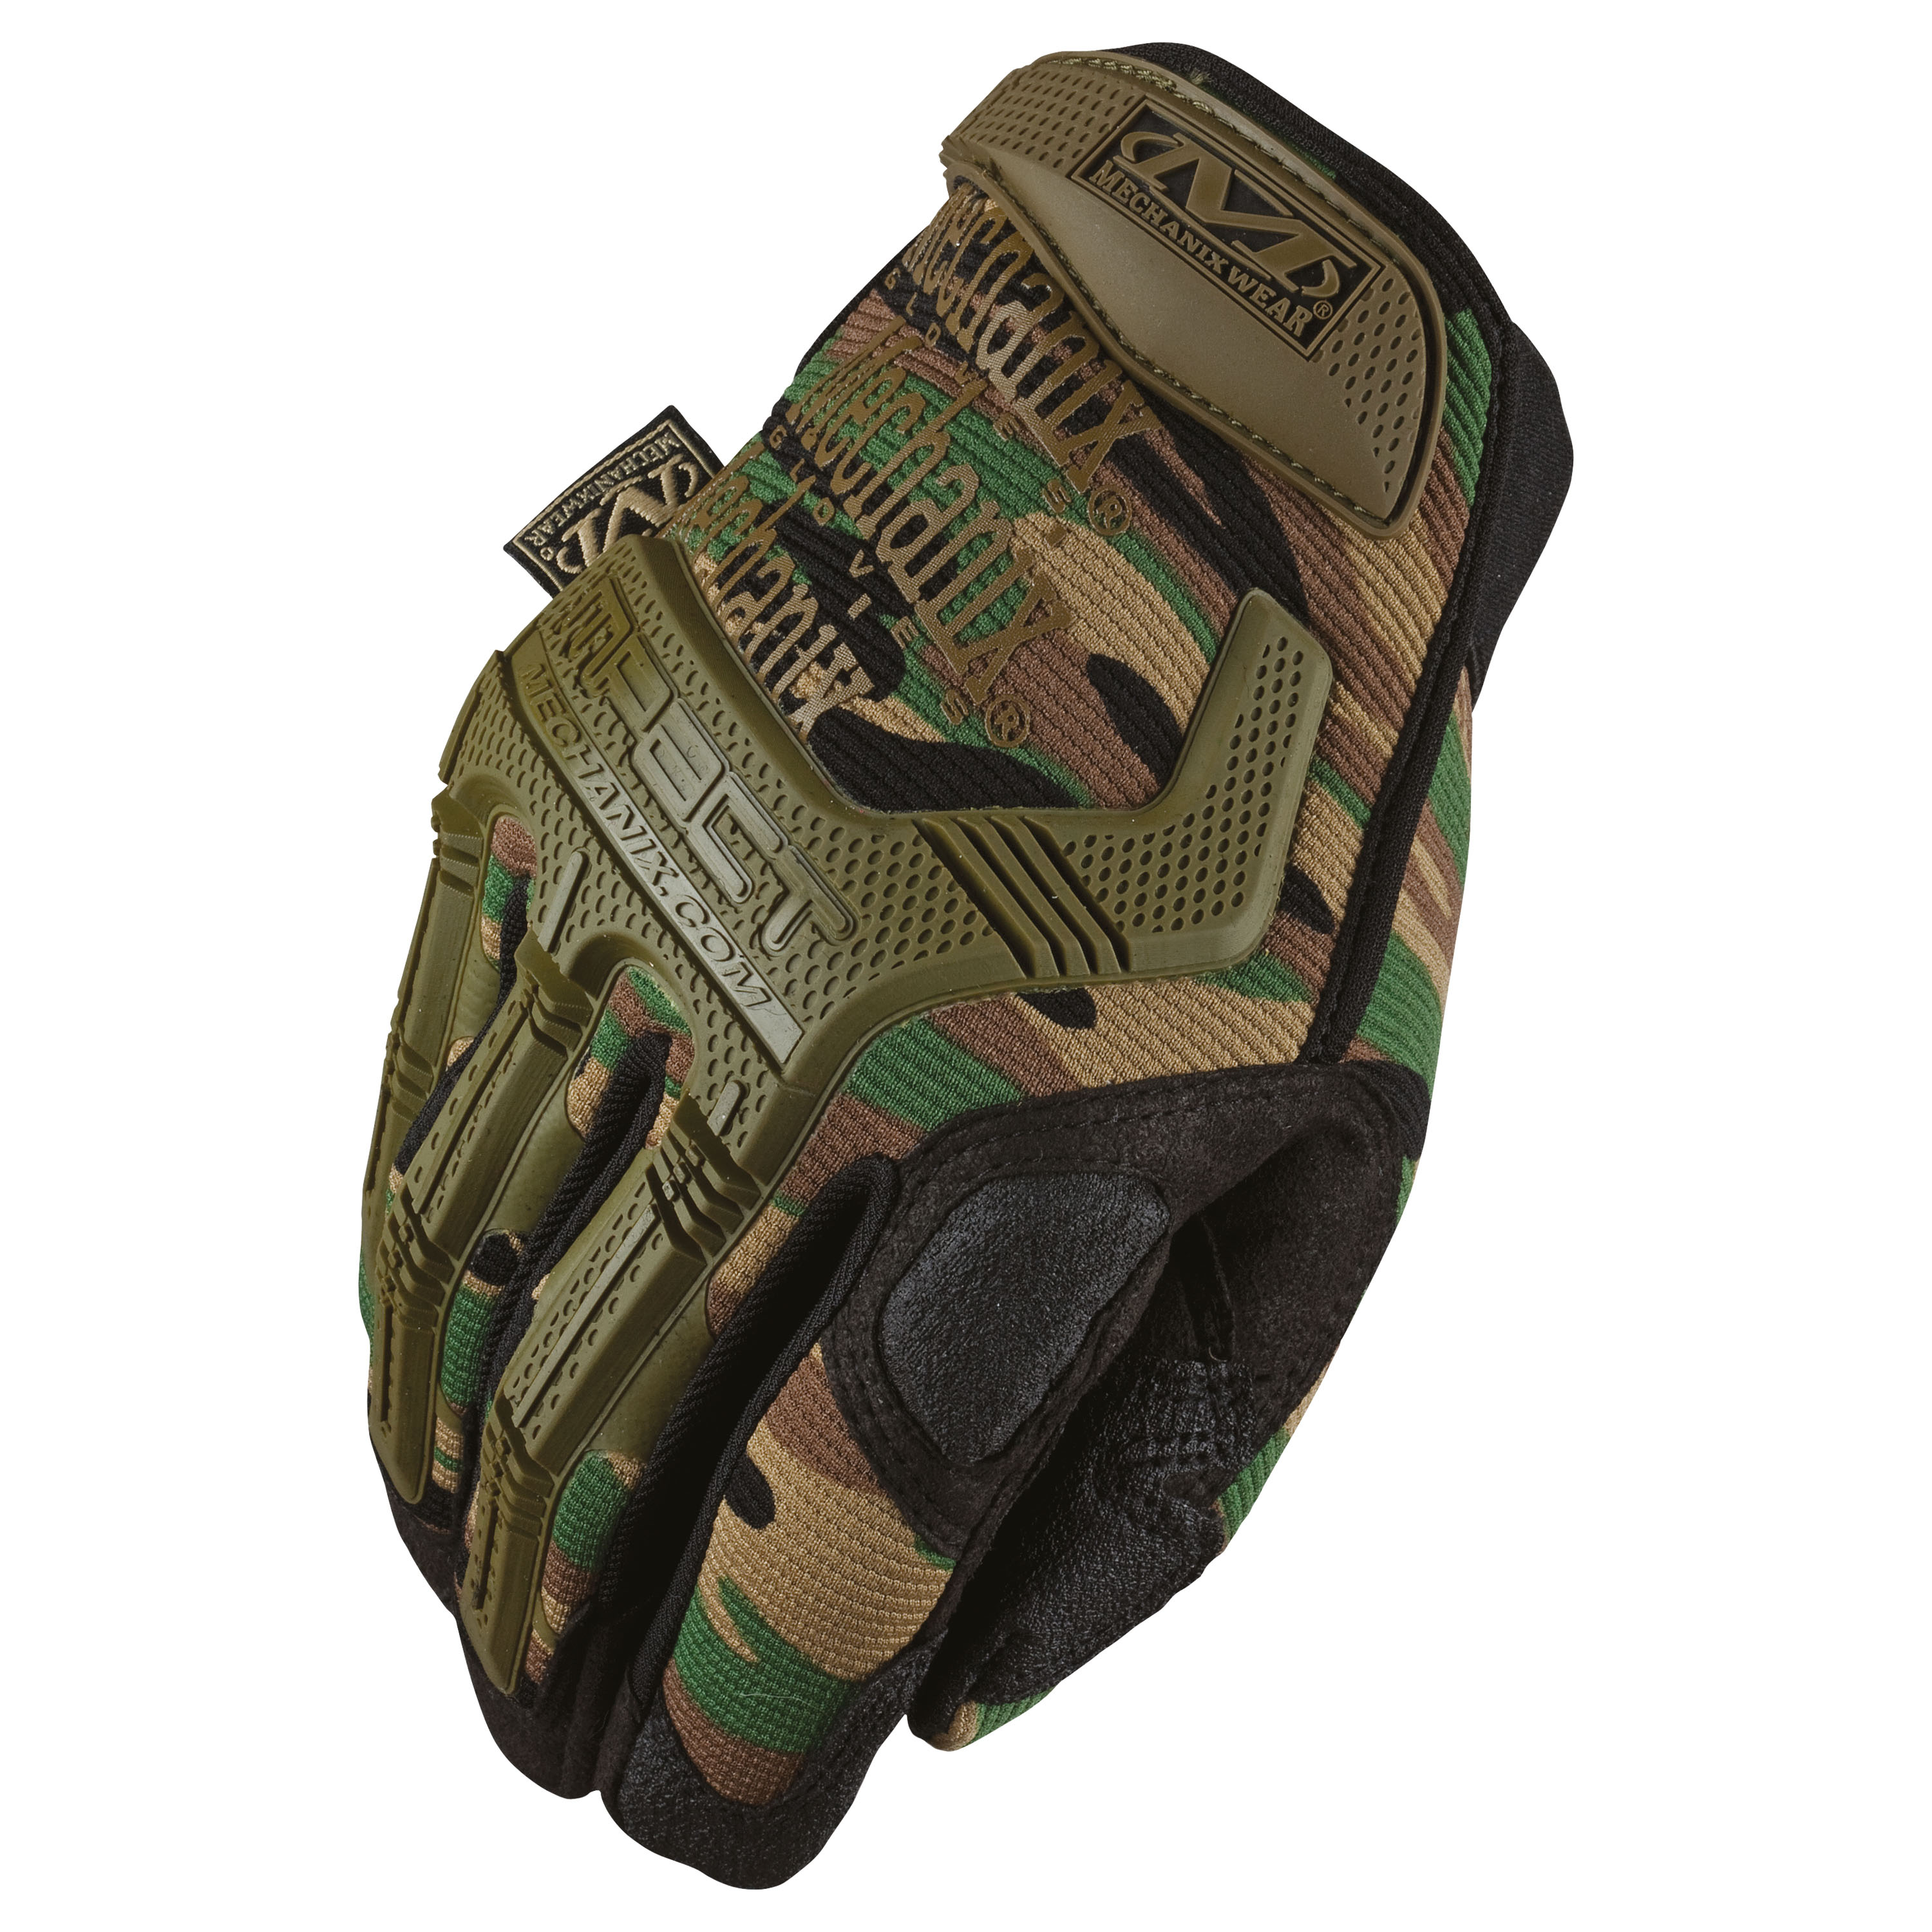 Handschuhe Mechanix Wear M-Pact woodland